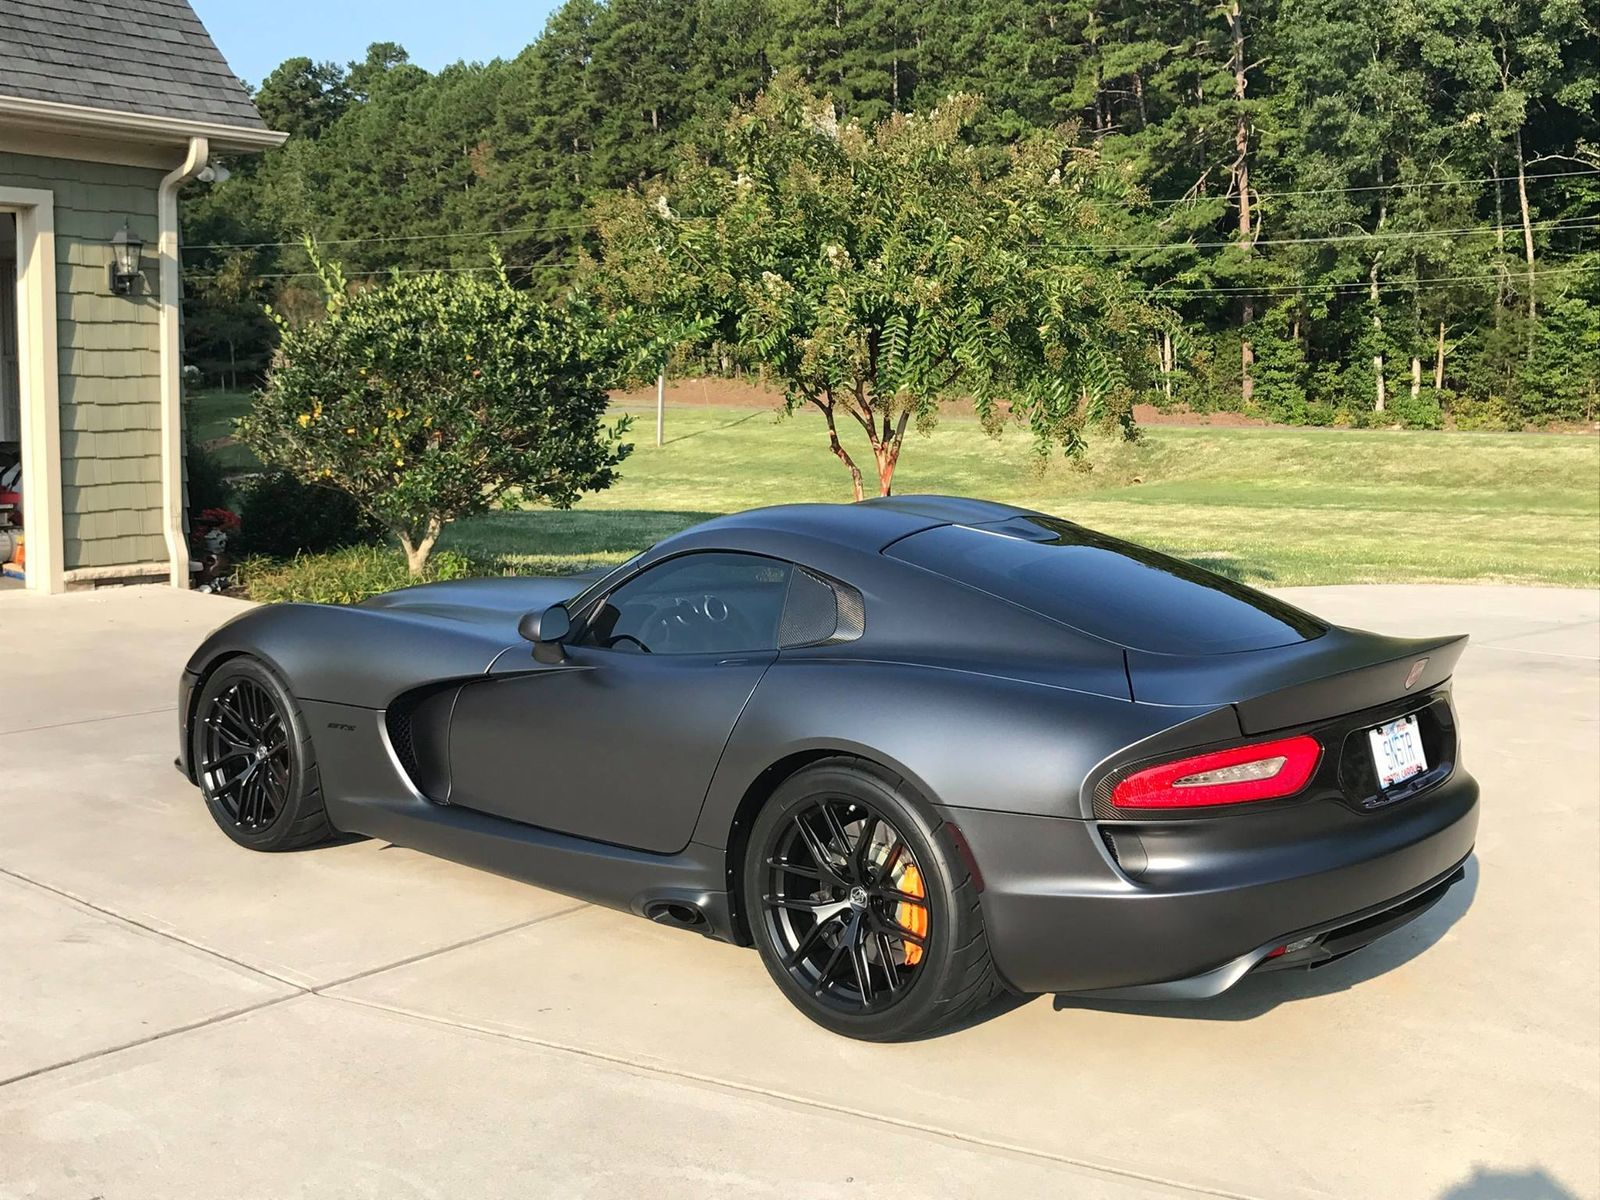 2017 Dodge Viper Ron S Gen 5 Srt On Forgeline One Piece Forged Molock Vx1 6 Wheels